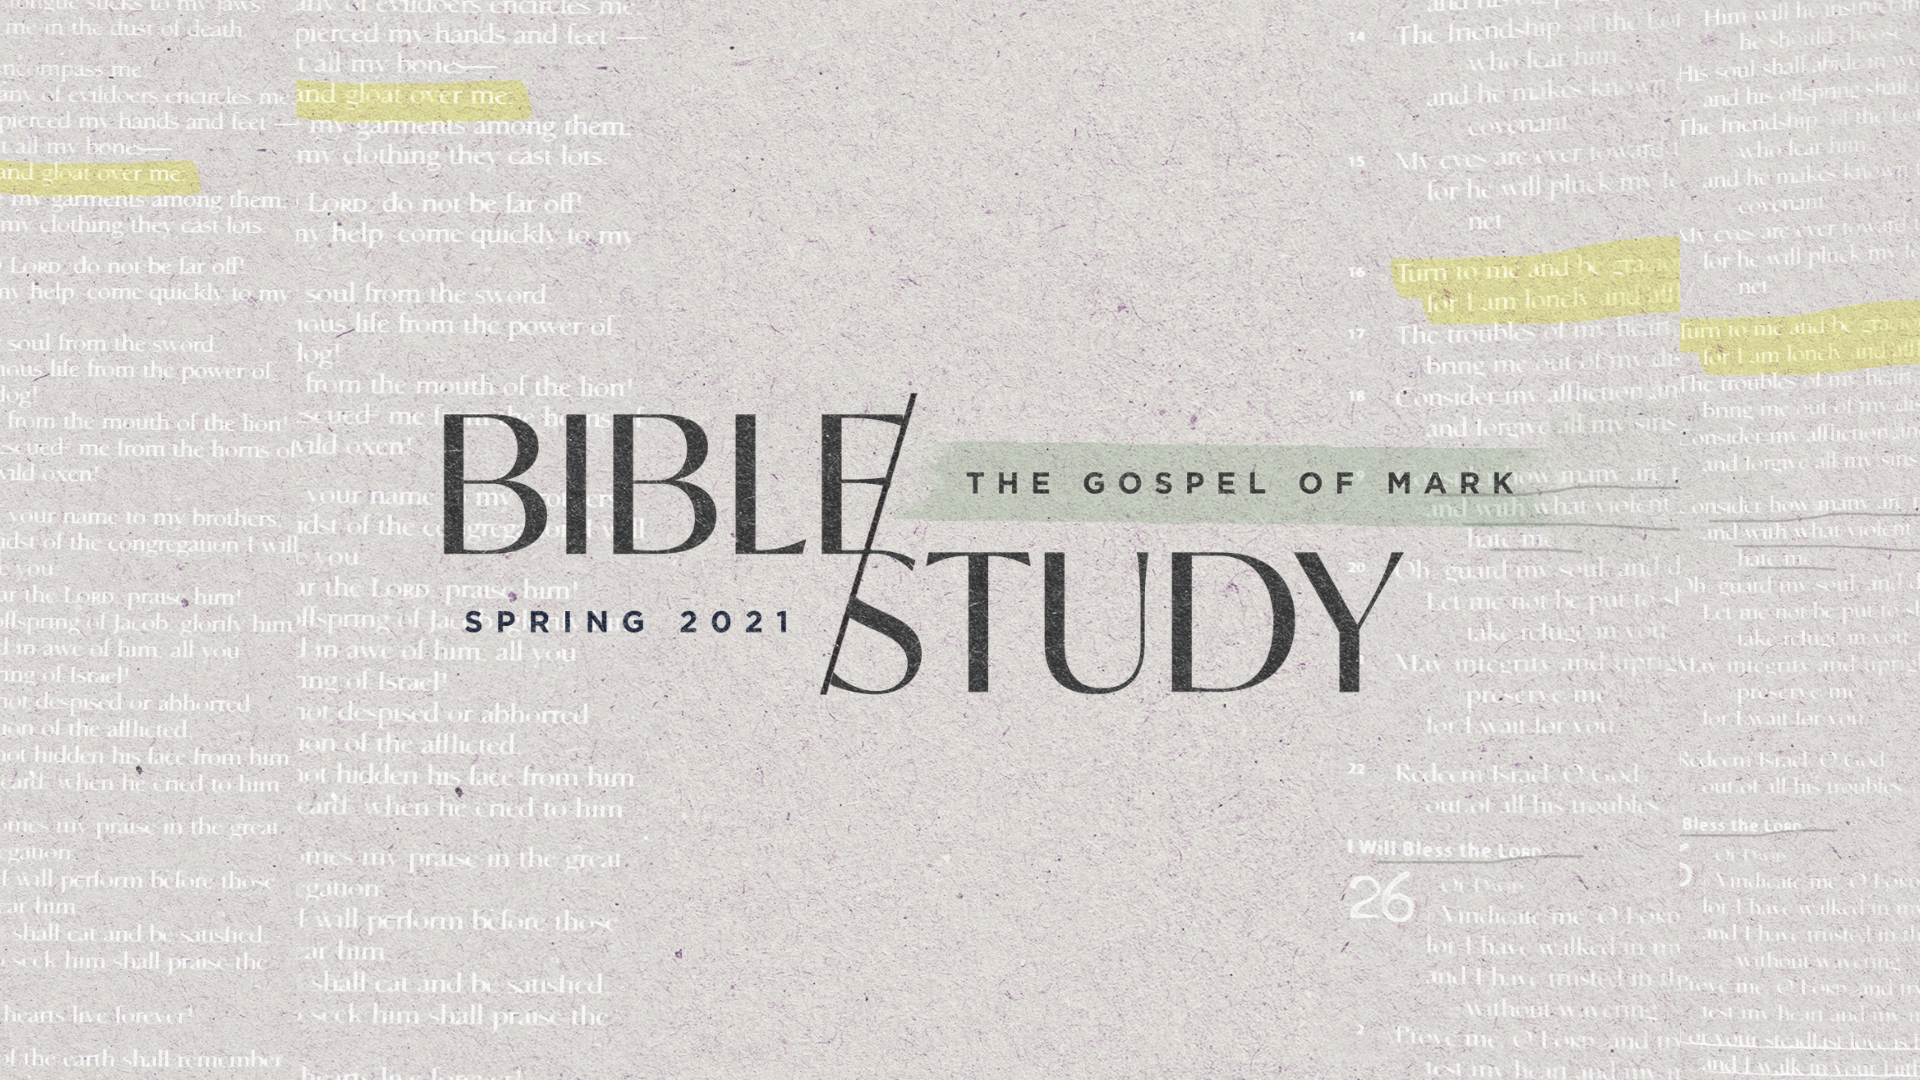 2021.Spring Mark Bible Study image